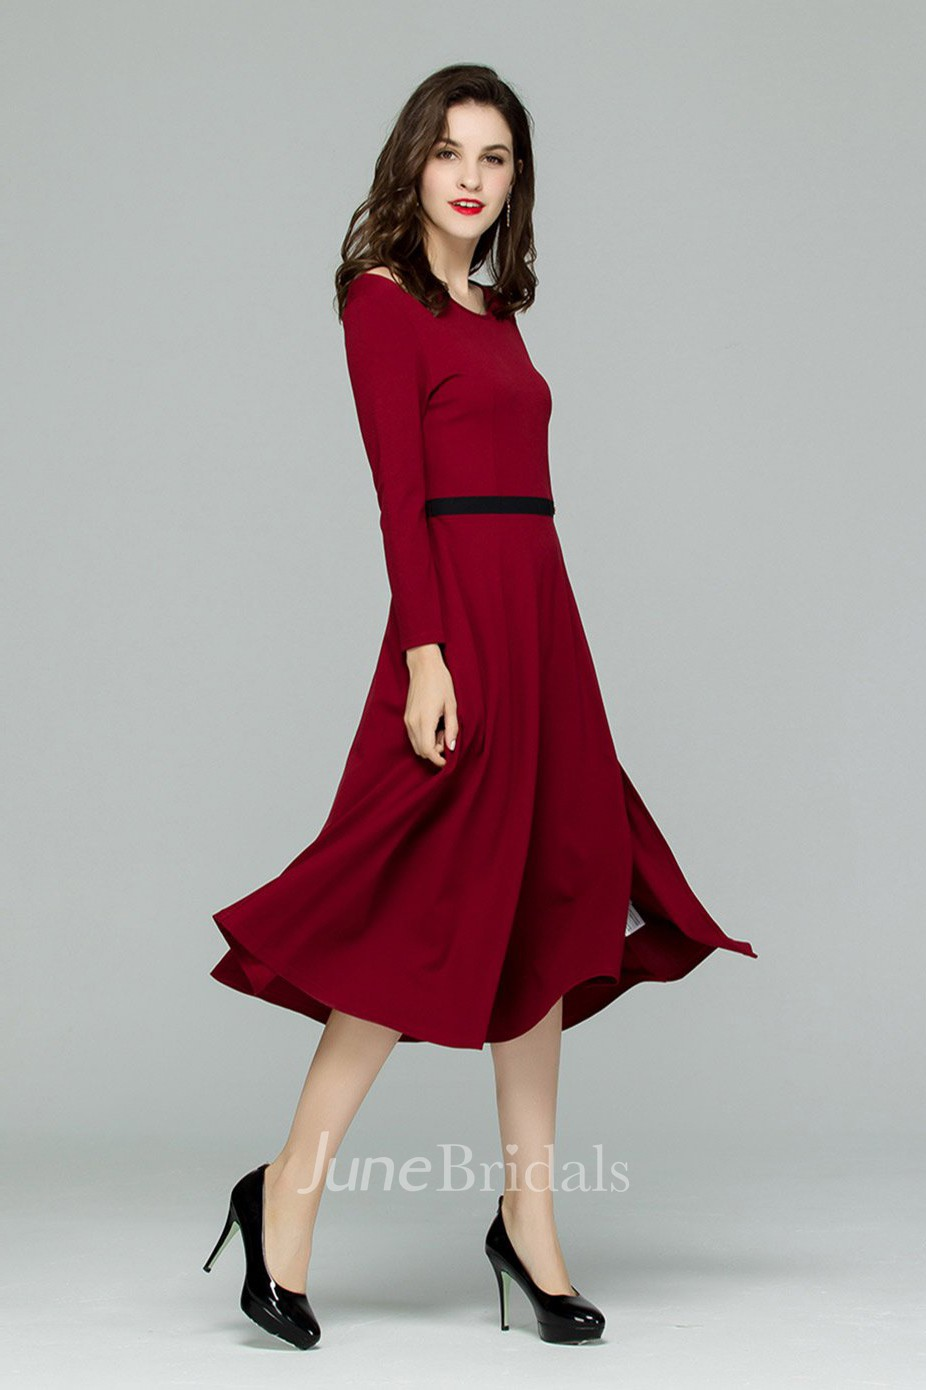 Burgundy Long Sleeve Cutout Midi Dress With Slit June